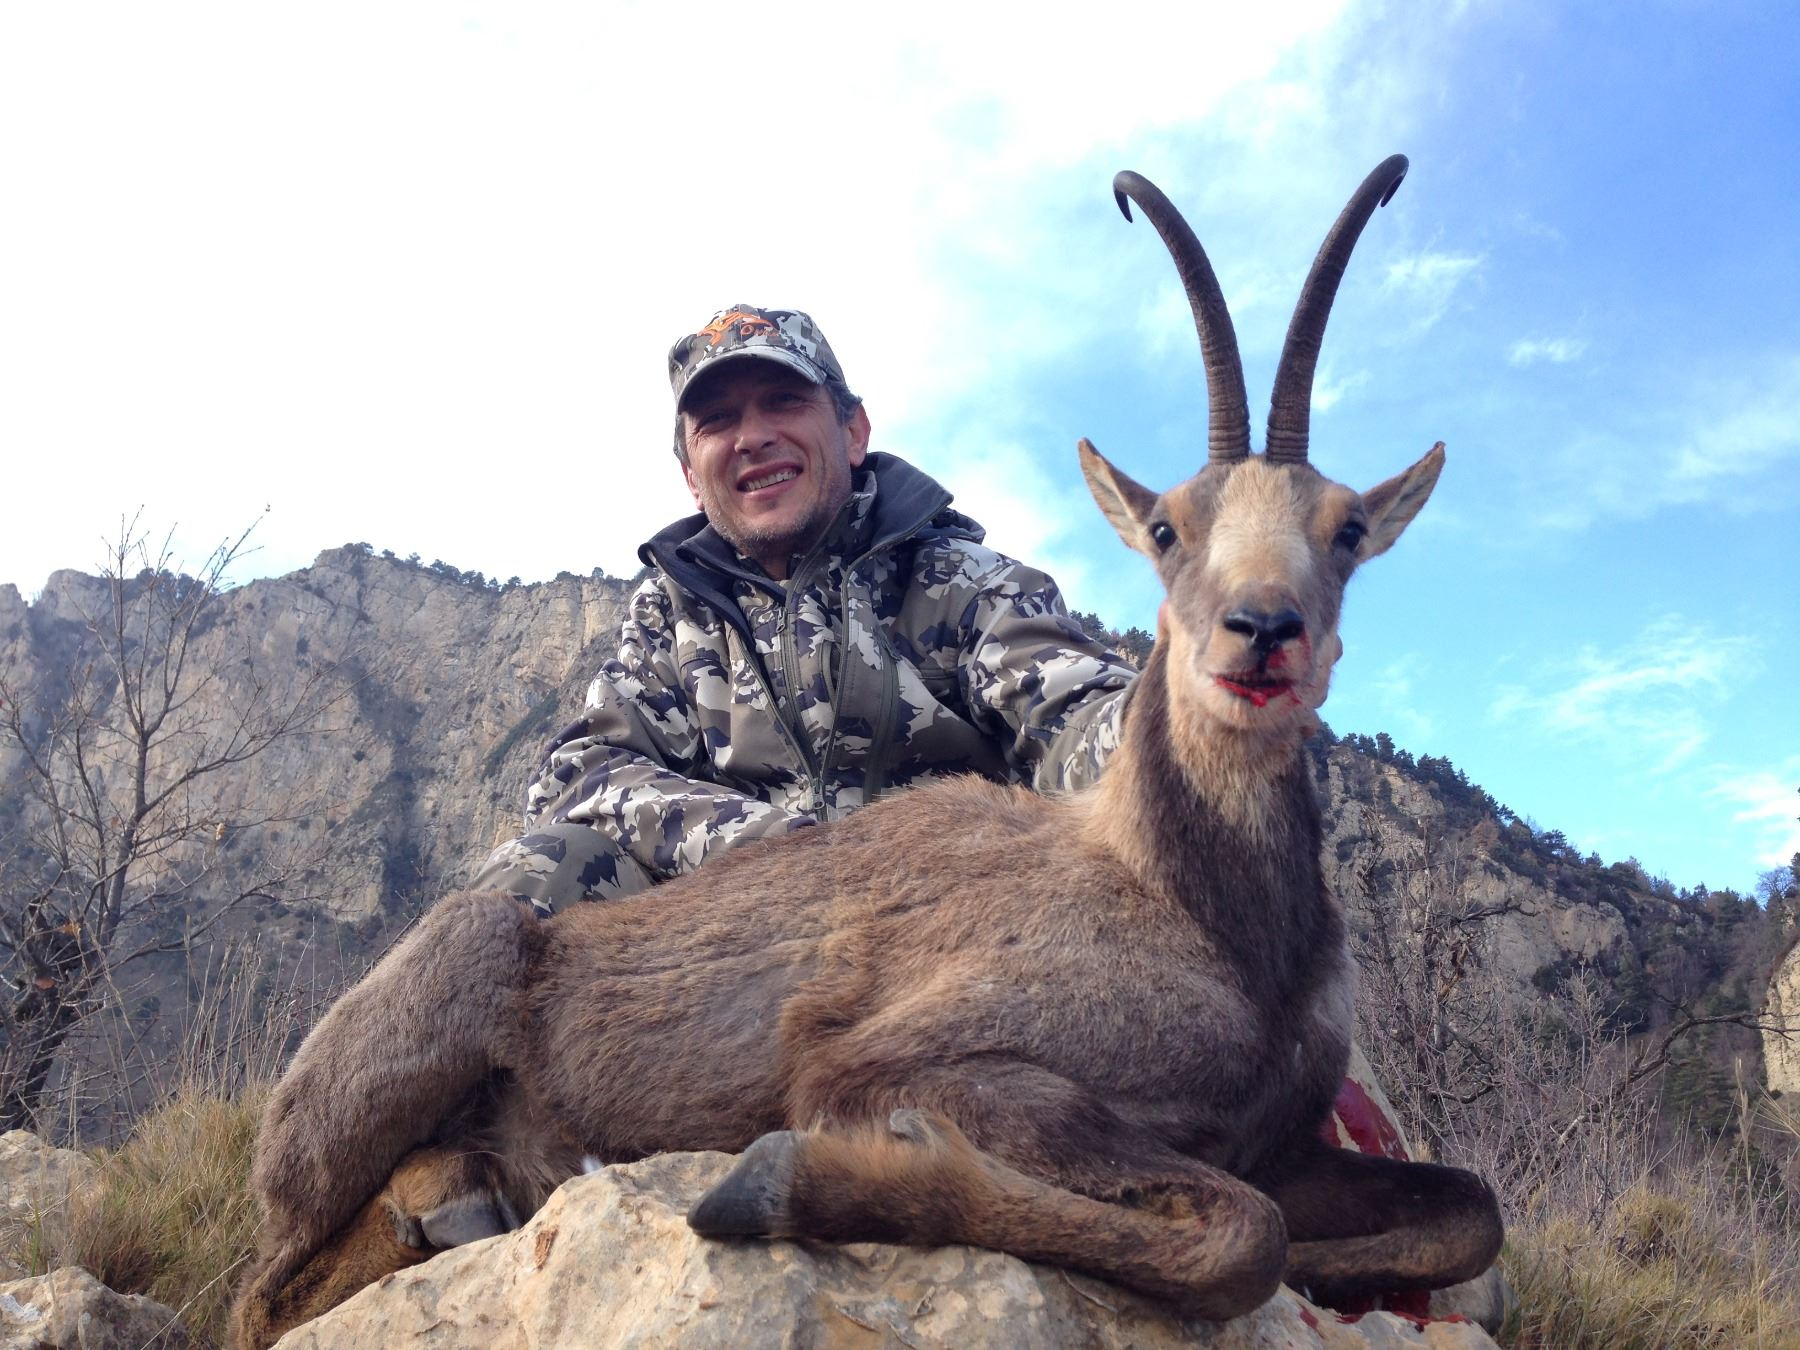 TROPHY TRIALS.: 5-Day Big Game Hunt for One Hunter and One Non-Hunter in Spain - Includes Trophy Fee